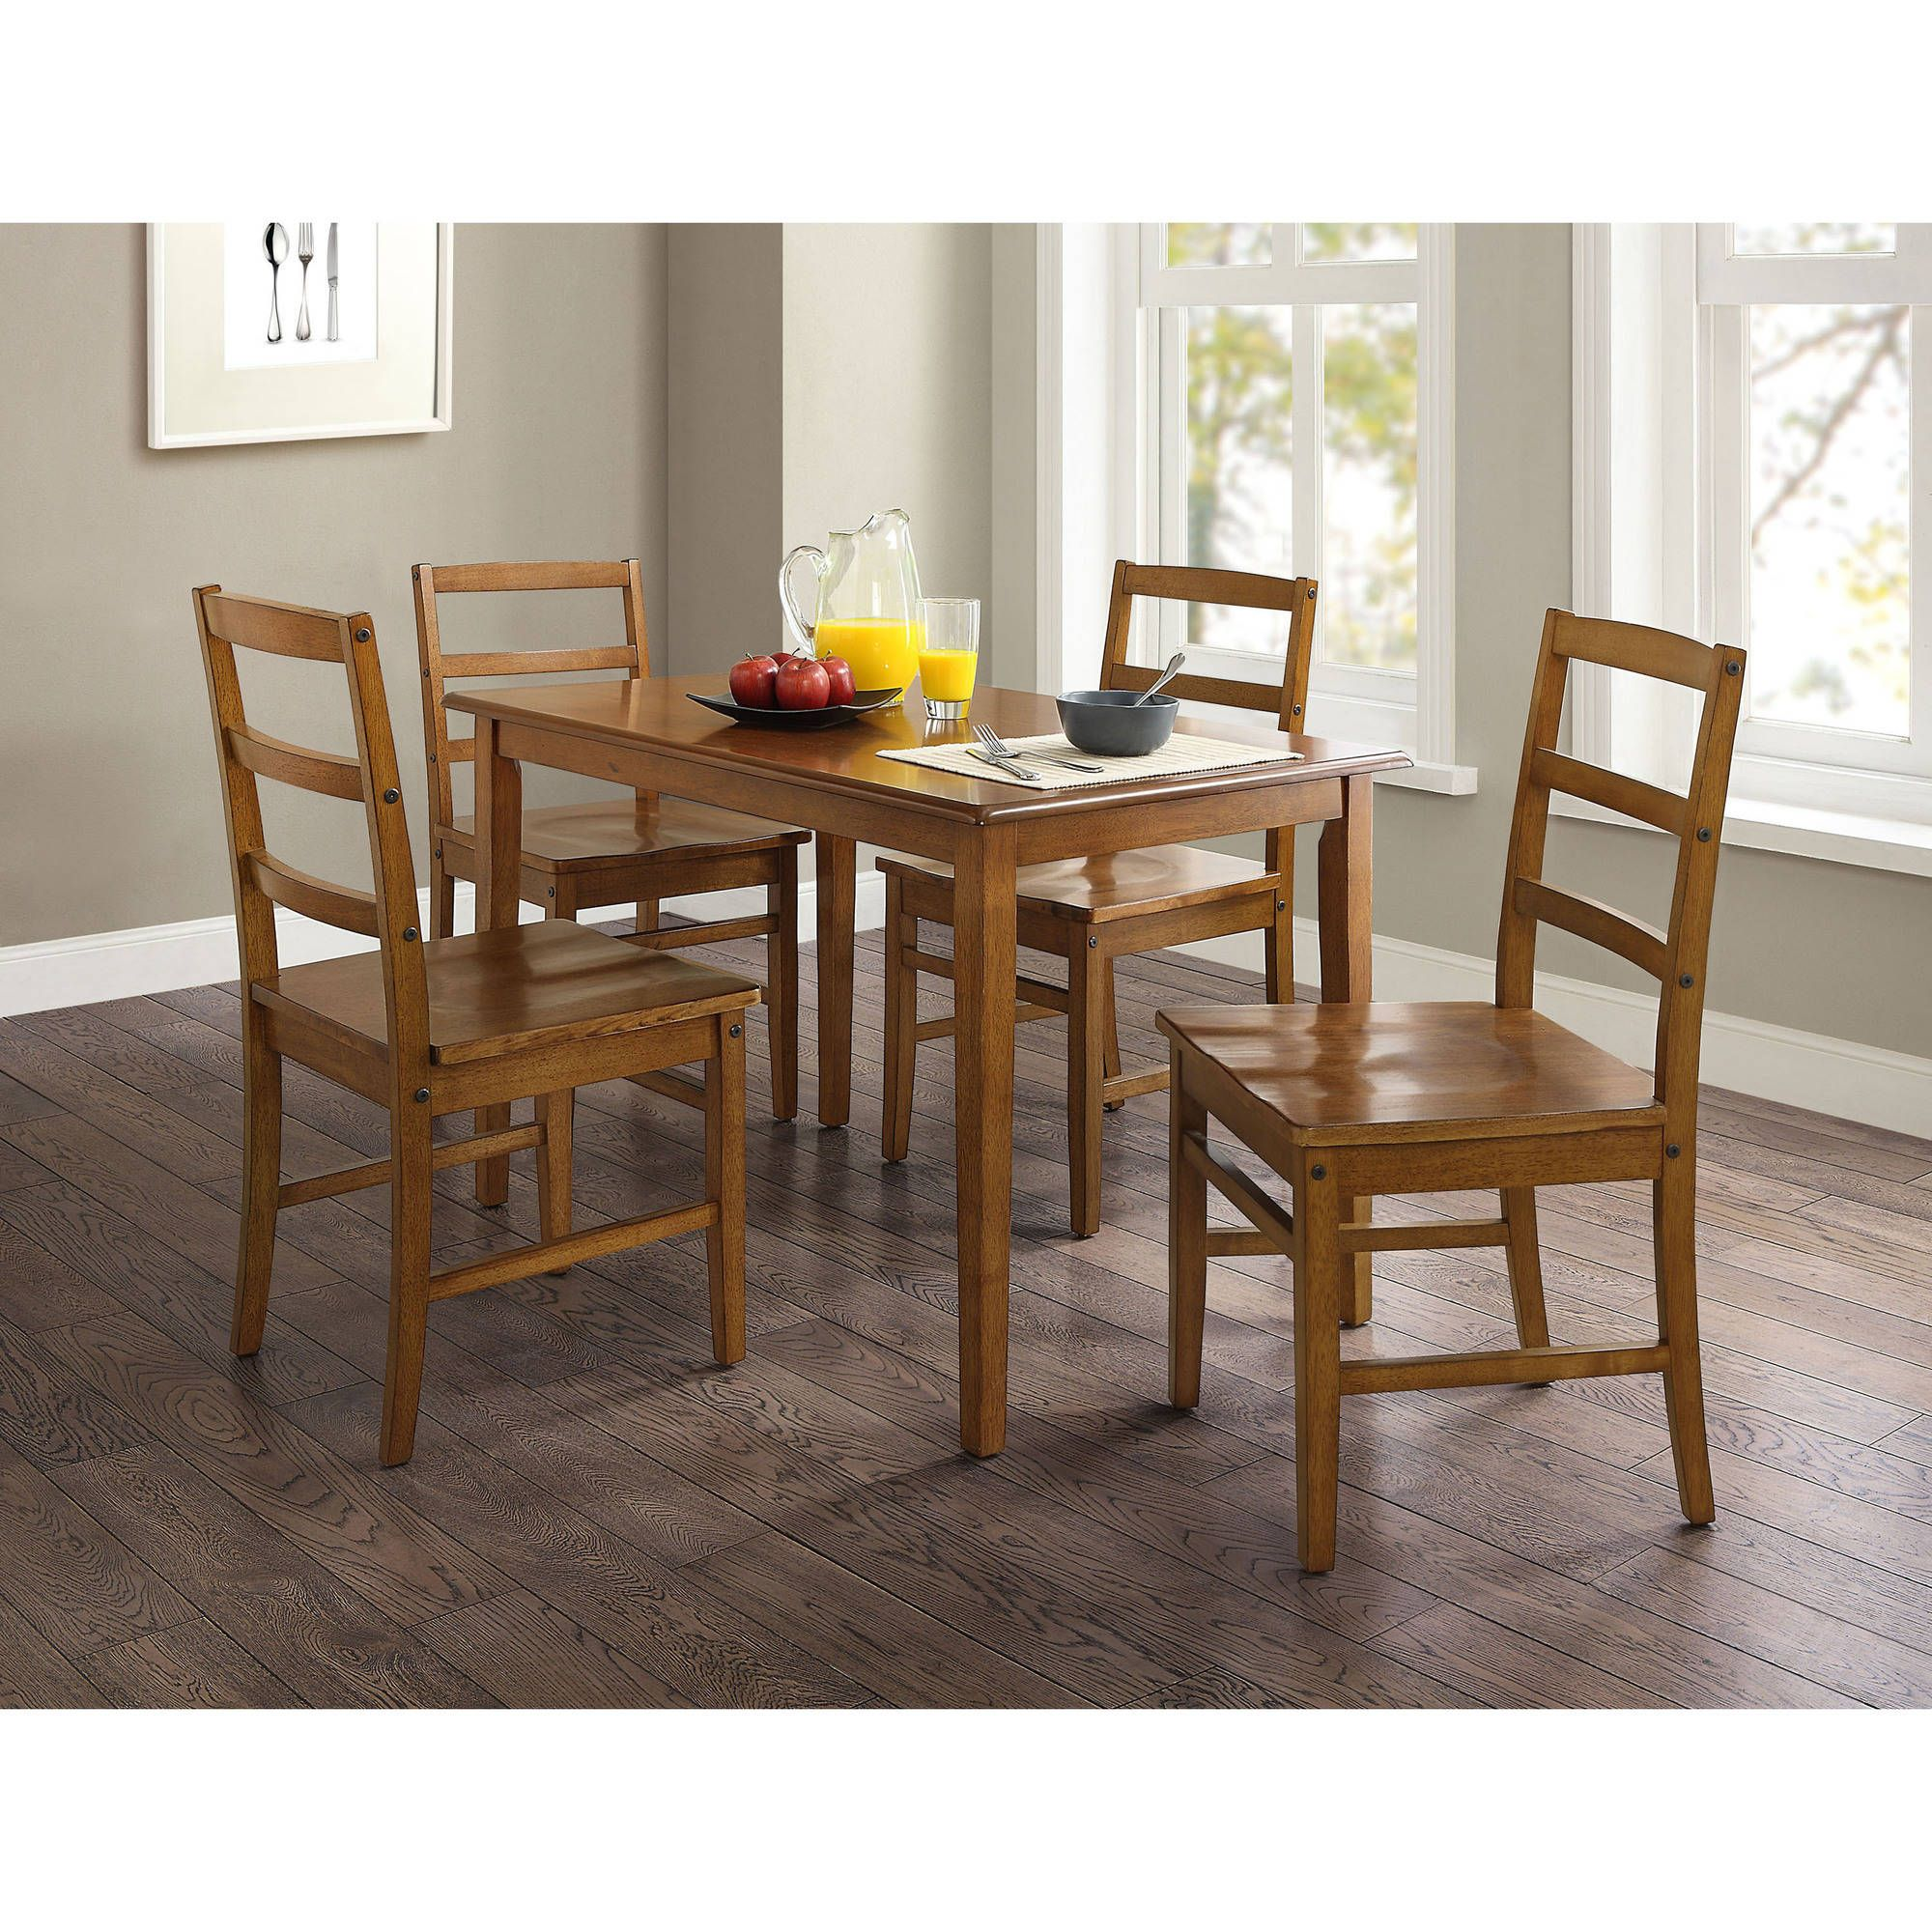 Mainstays 5-Piece Dining Set, Walnut Finish and Solid Wood Seats ...